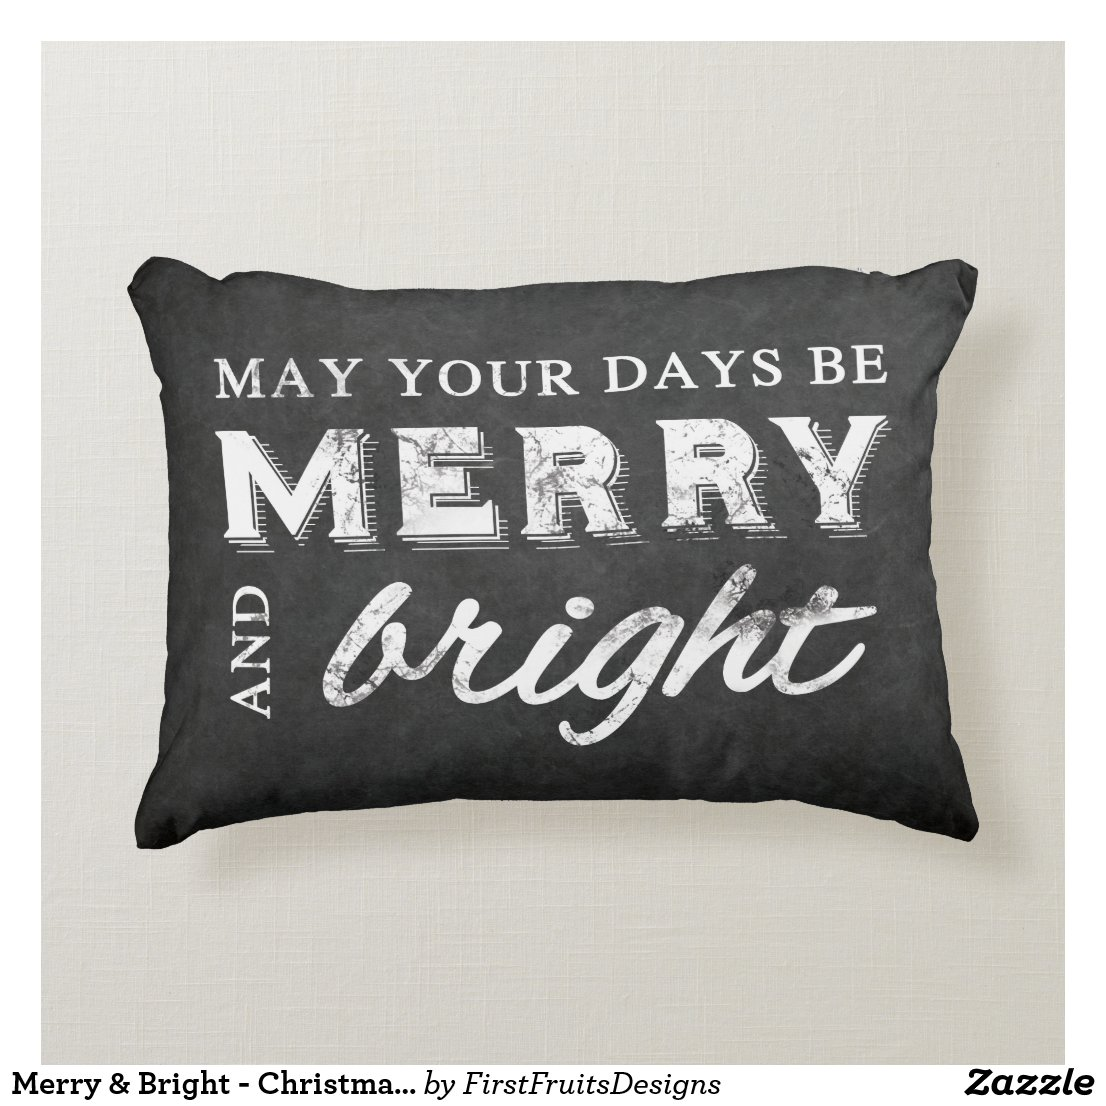 Merry & Bright - Christmas Rustic Chalkboard Accent Pillow